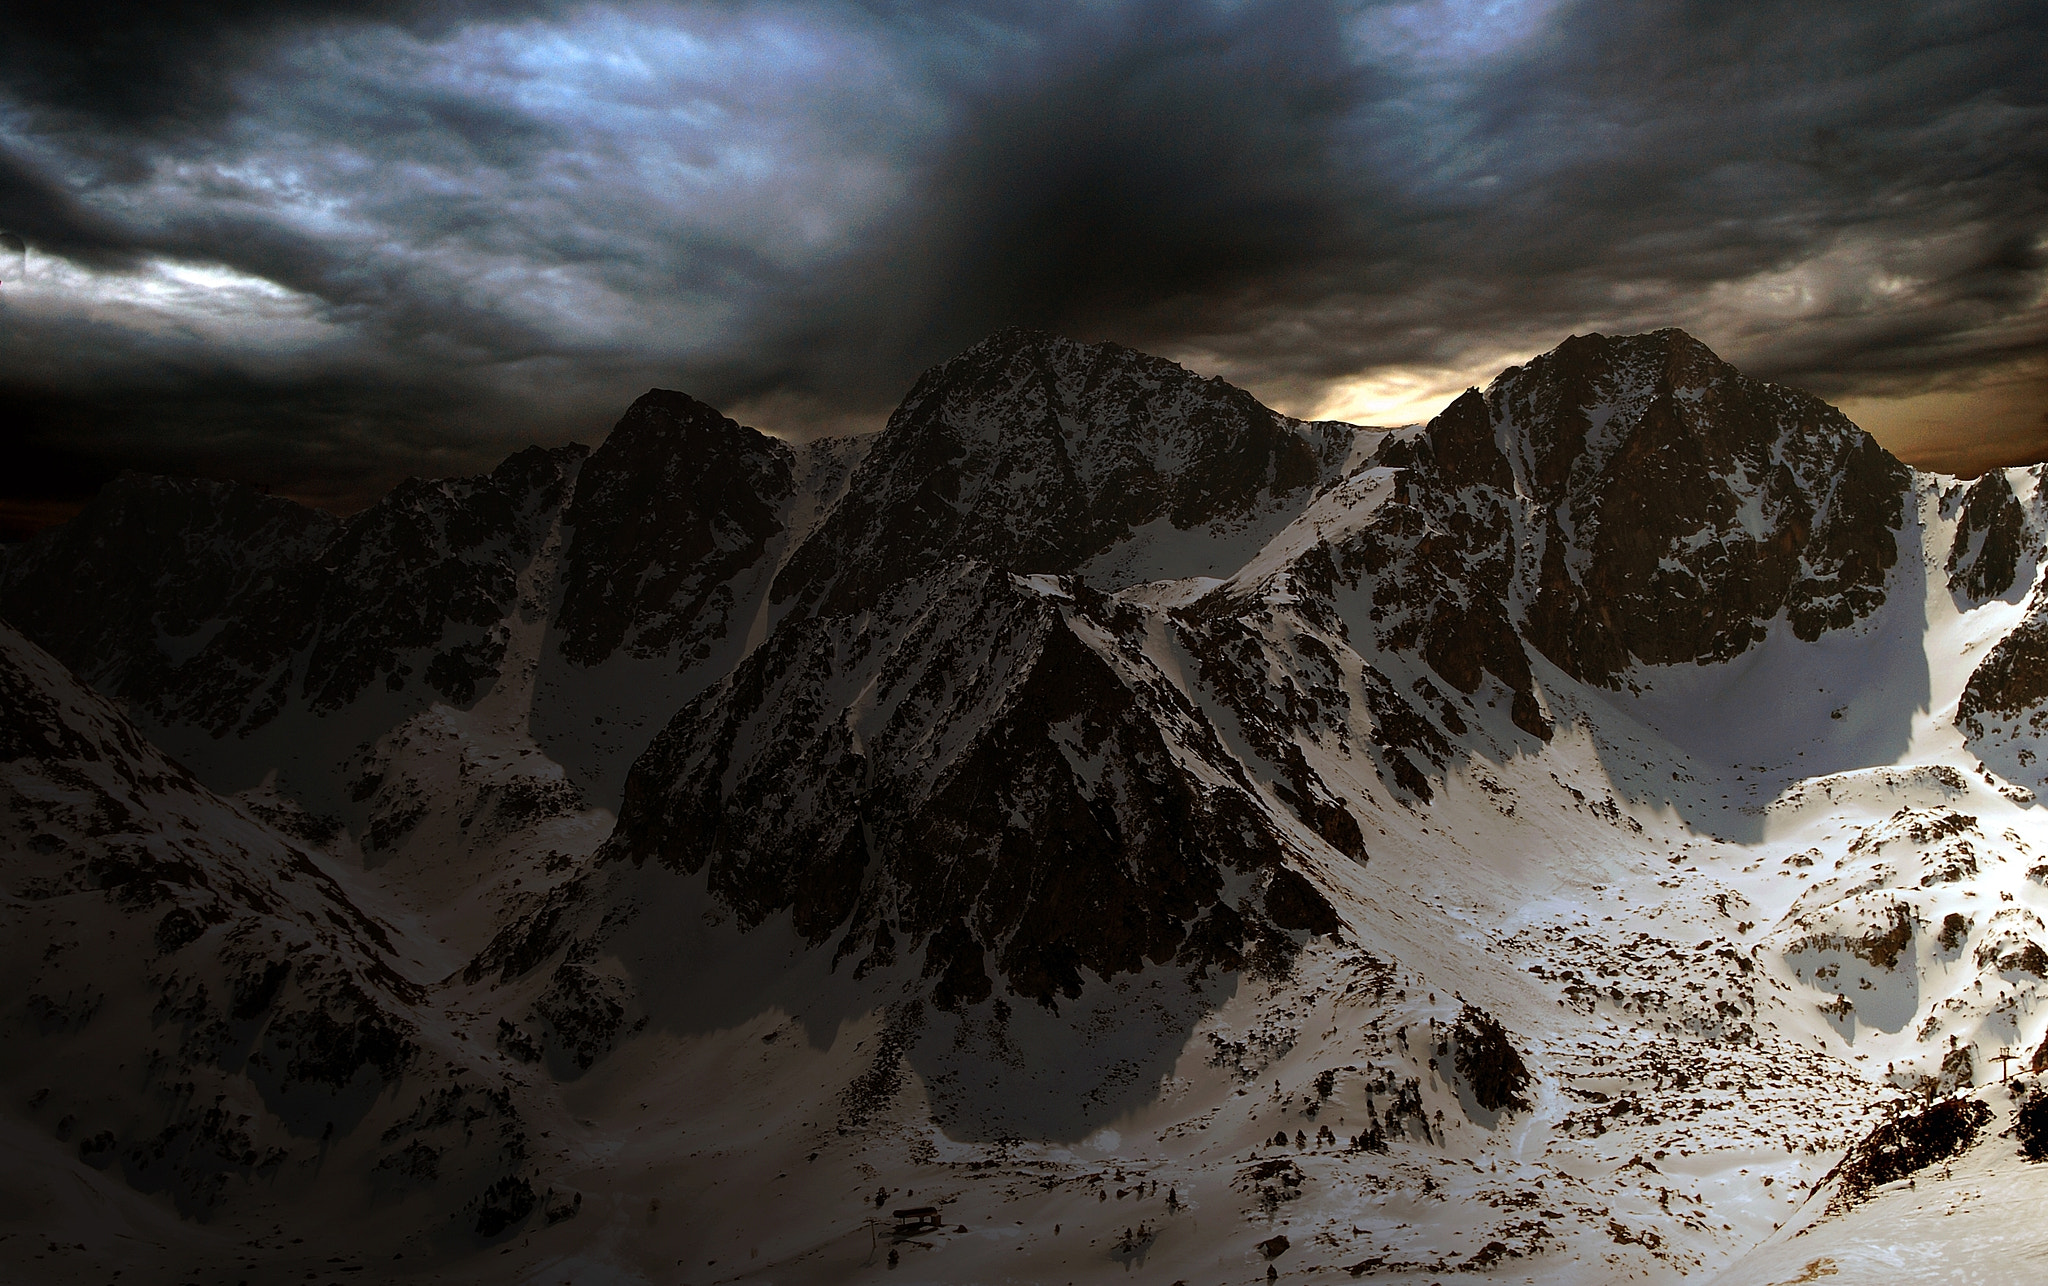 Photograph Pirineo Catalan by Manel Cantarero Martinez on 500px